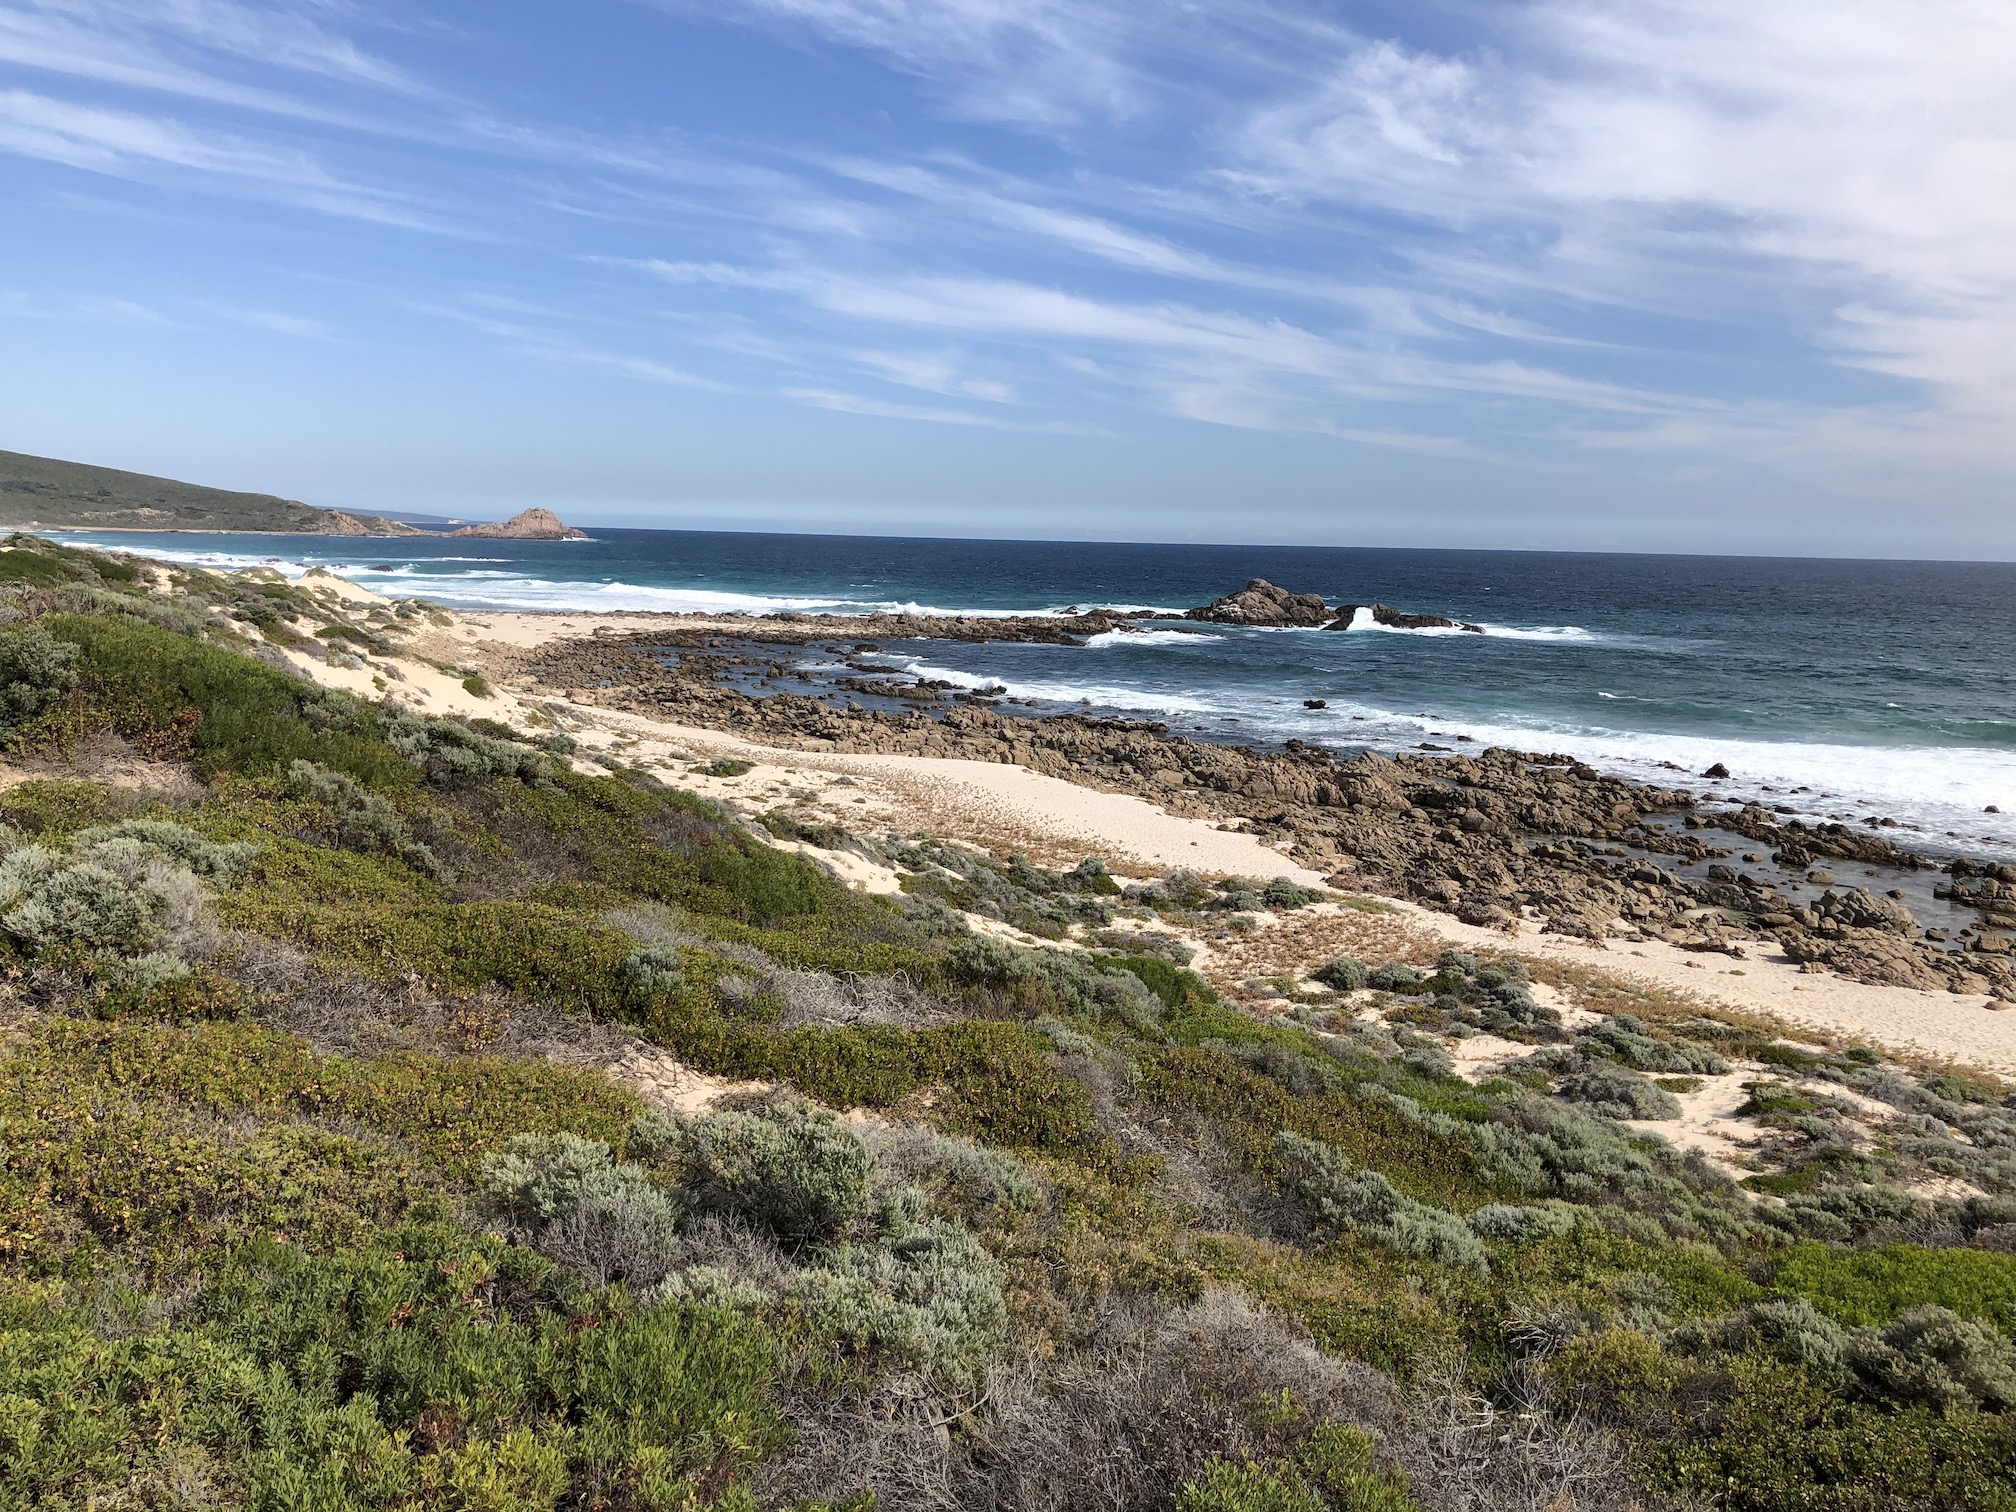 2020-04-17 View S to Sugarloaf Rock from W side of Cape Naturaliste